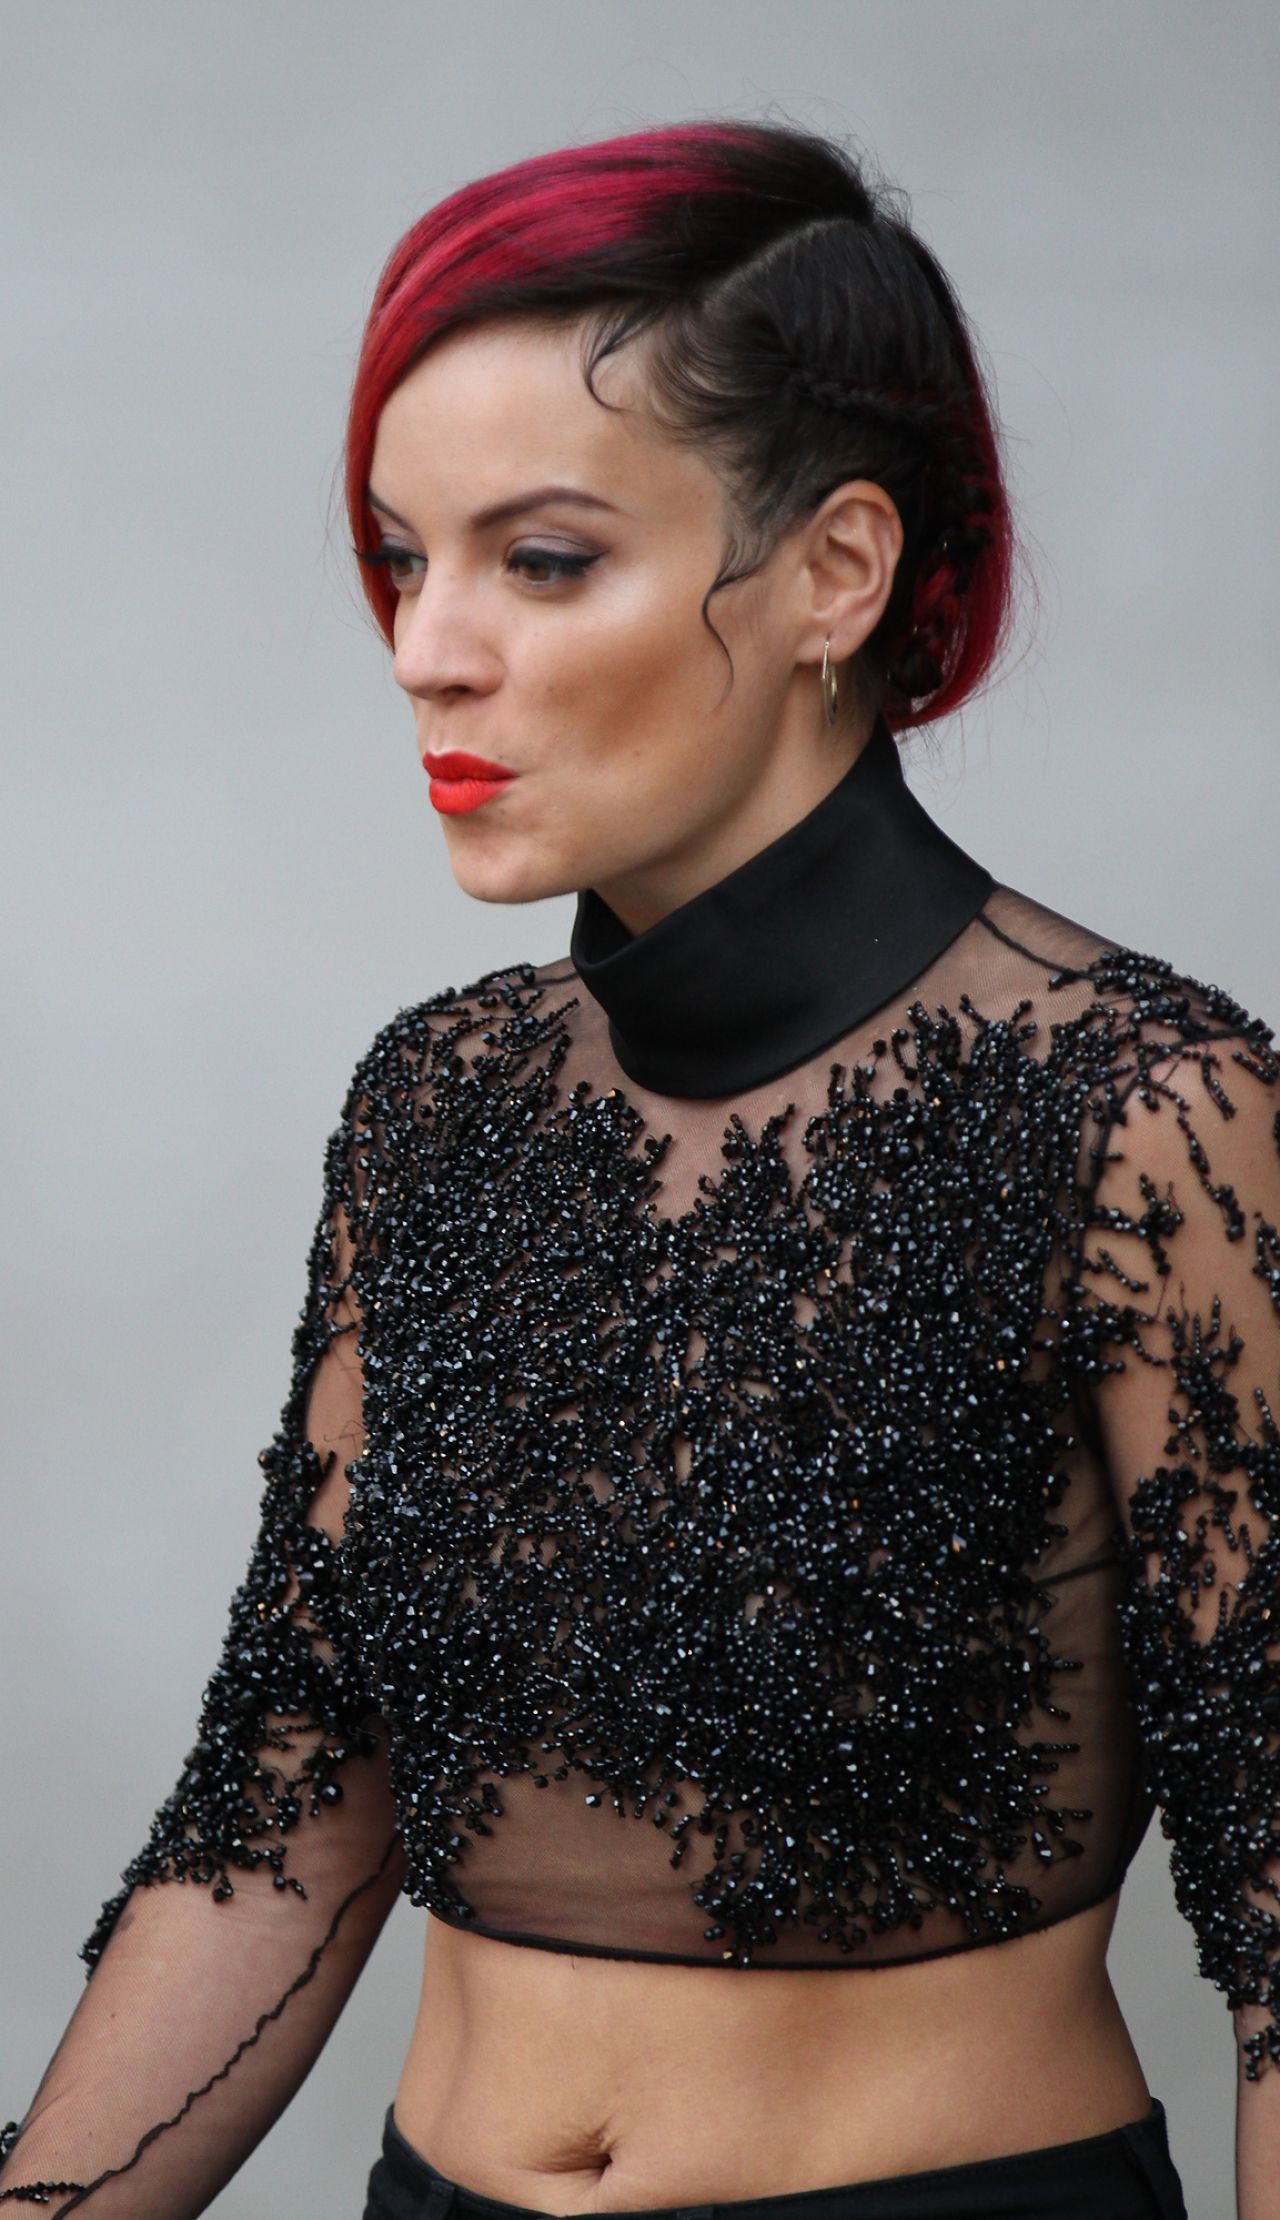 Lily Allen at the BBC Radio ONE Studios in London - June 2014 Lily Allen